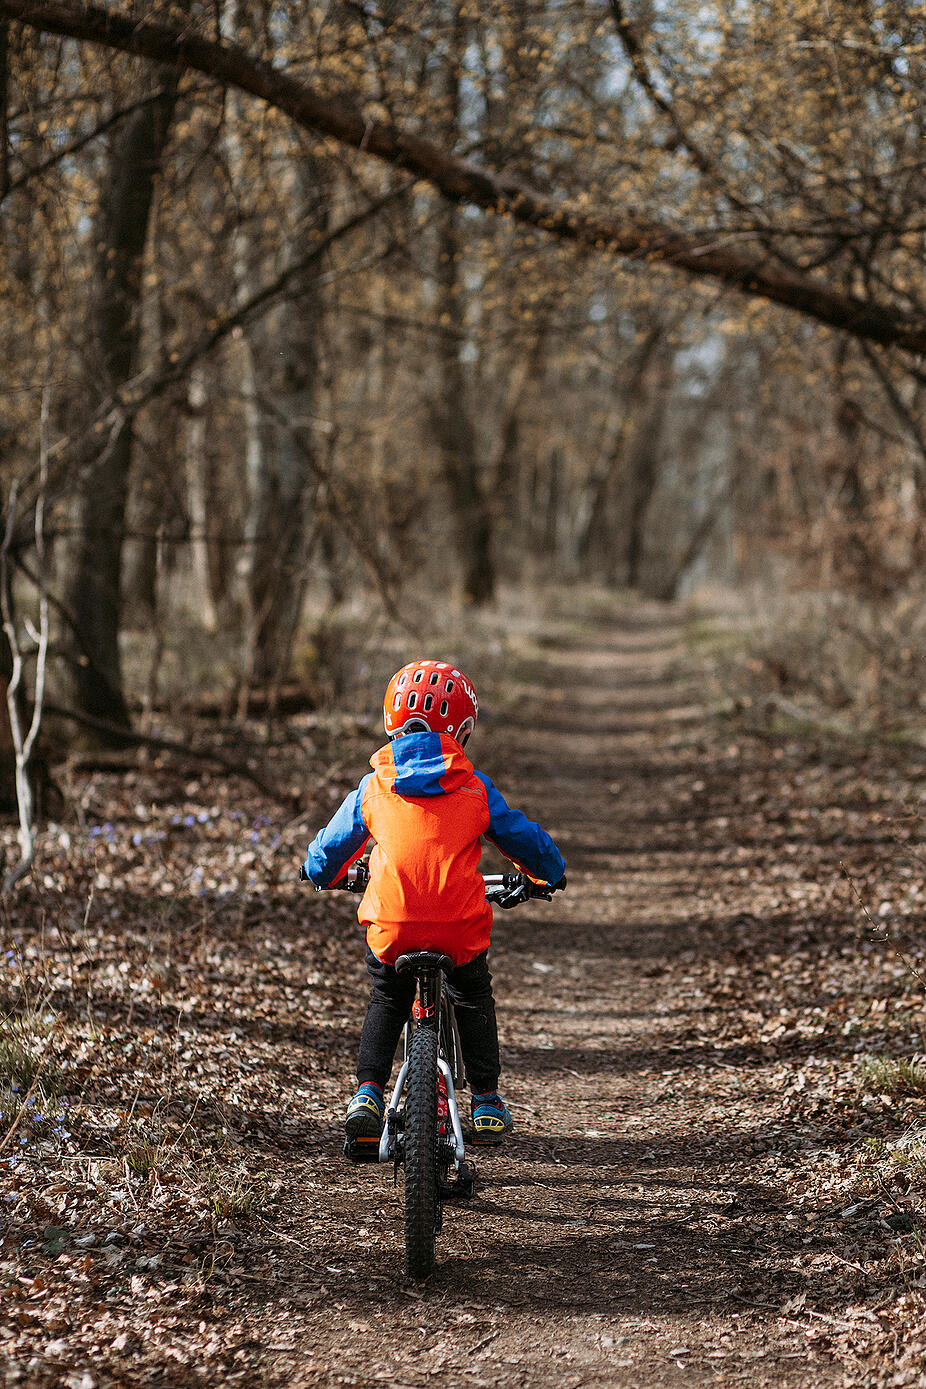 Kid with woom Mountainbike in the woods